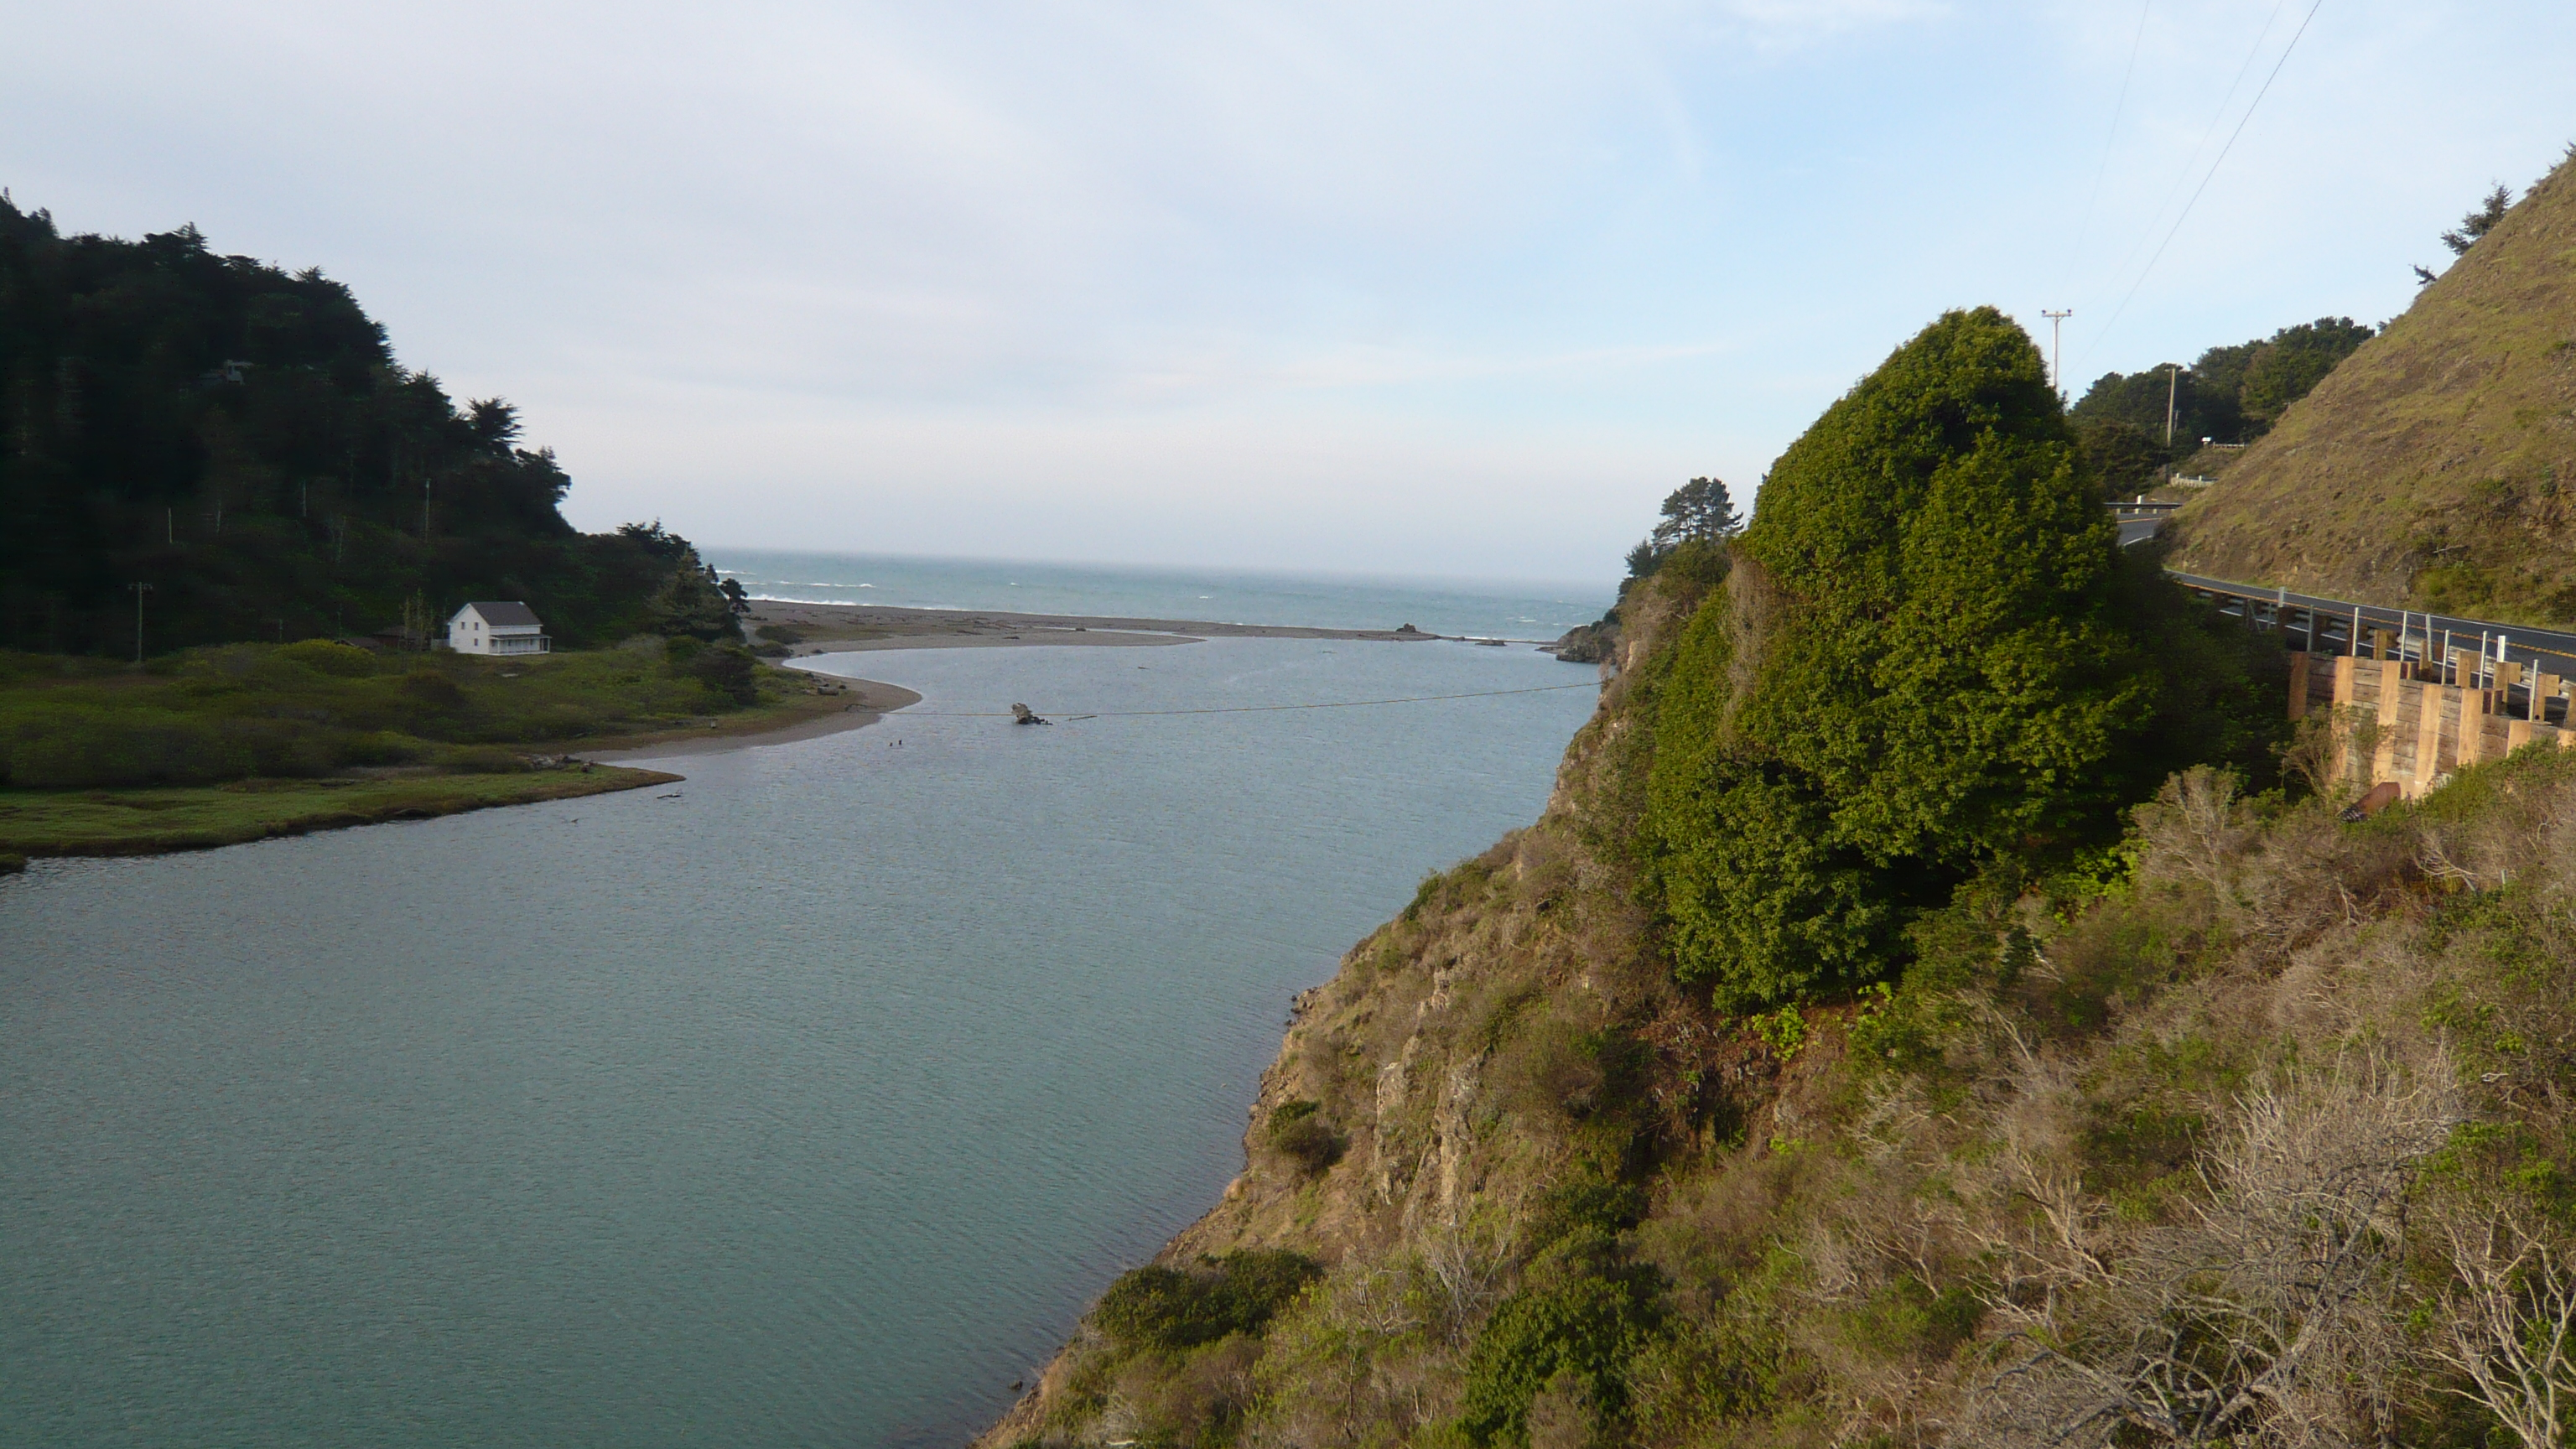 Navarro River, reaching the Pacific, March 2014